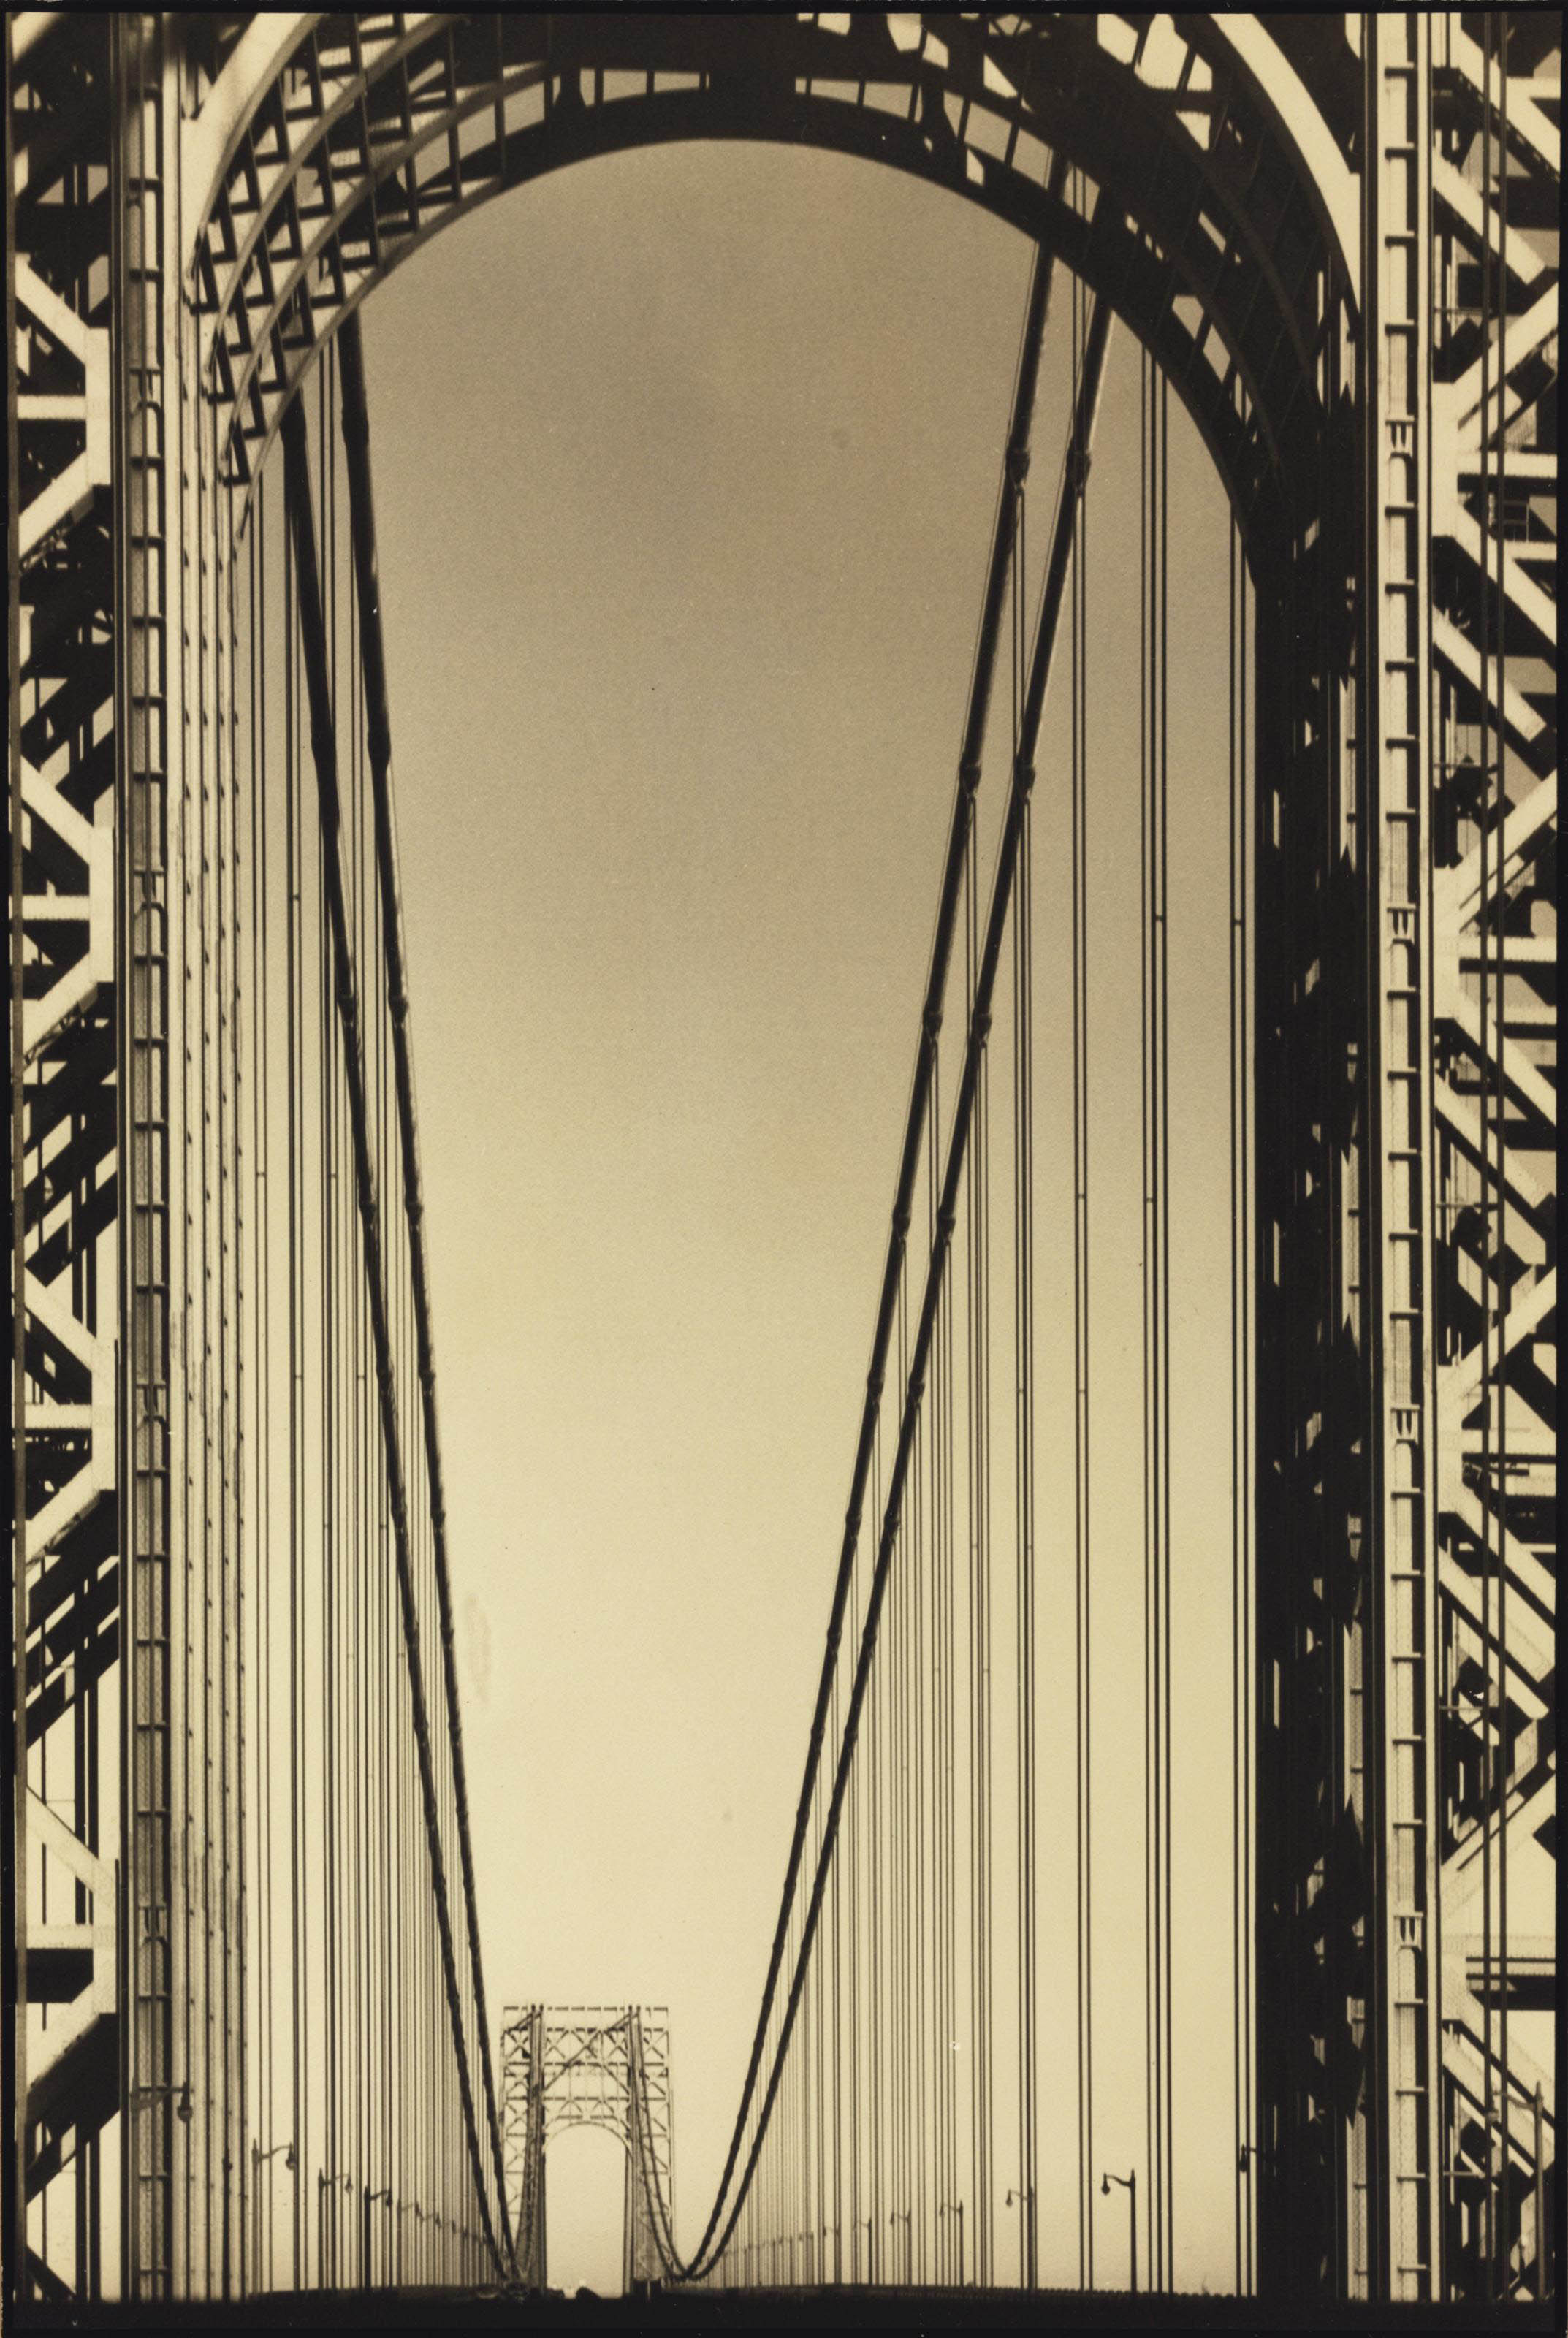 George Washington Bridge, 1933